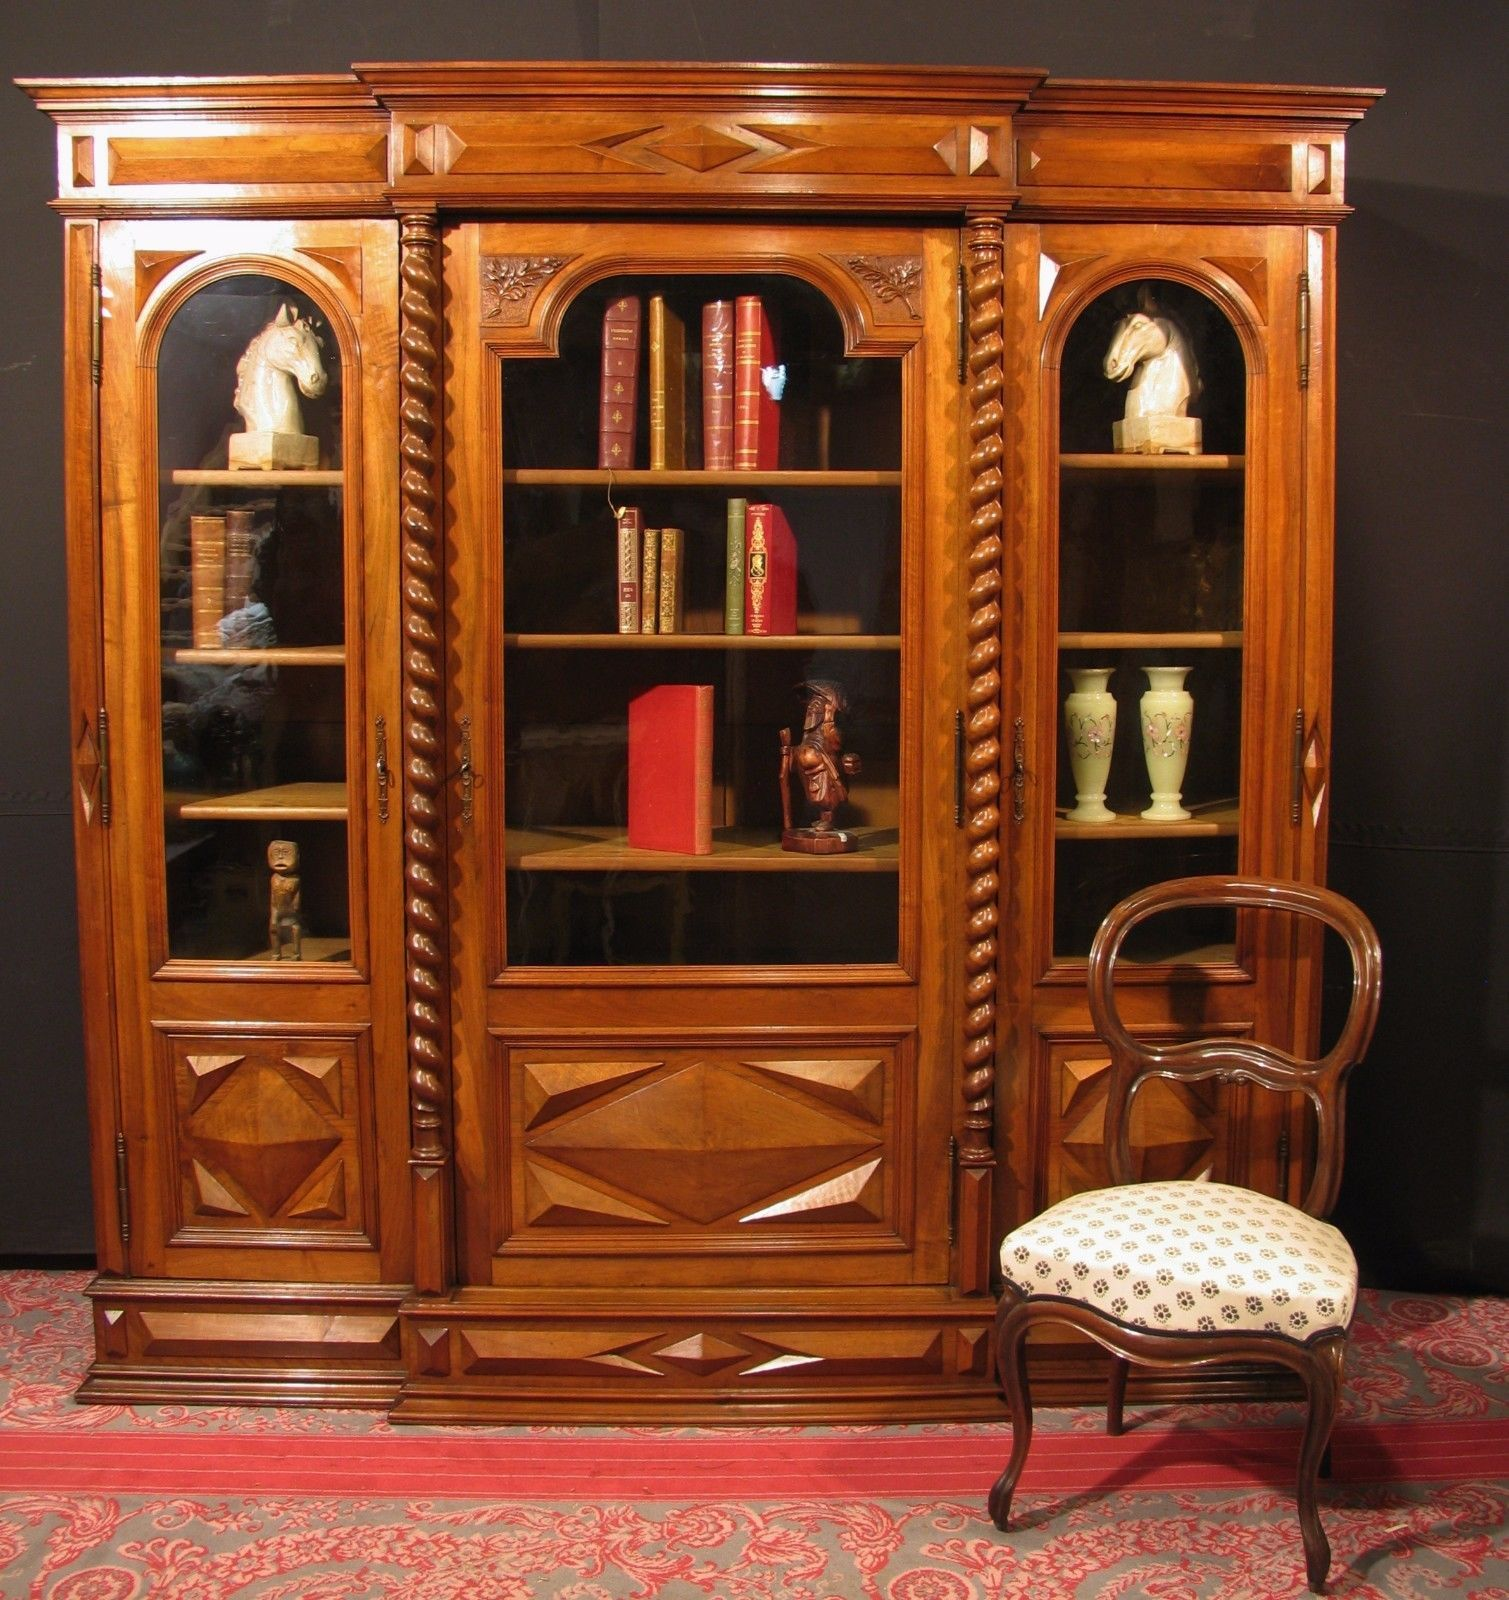 ancienne biblioth que louis xiii noyer vitrine meuble cabinet curiosit chasse meubles. Black Bedroom Furniture Sets. Home Design Ideas